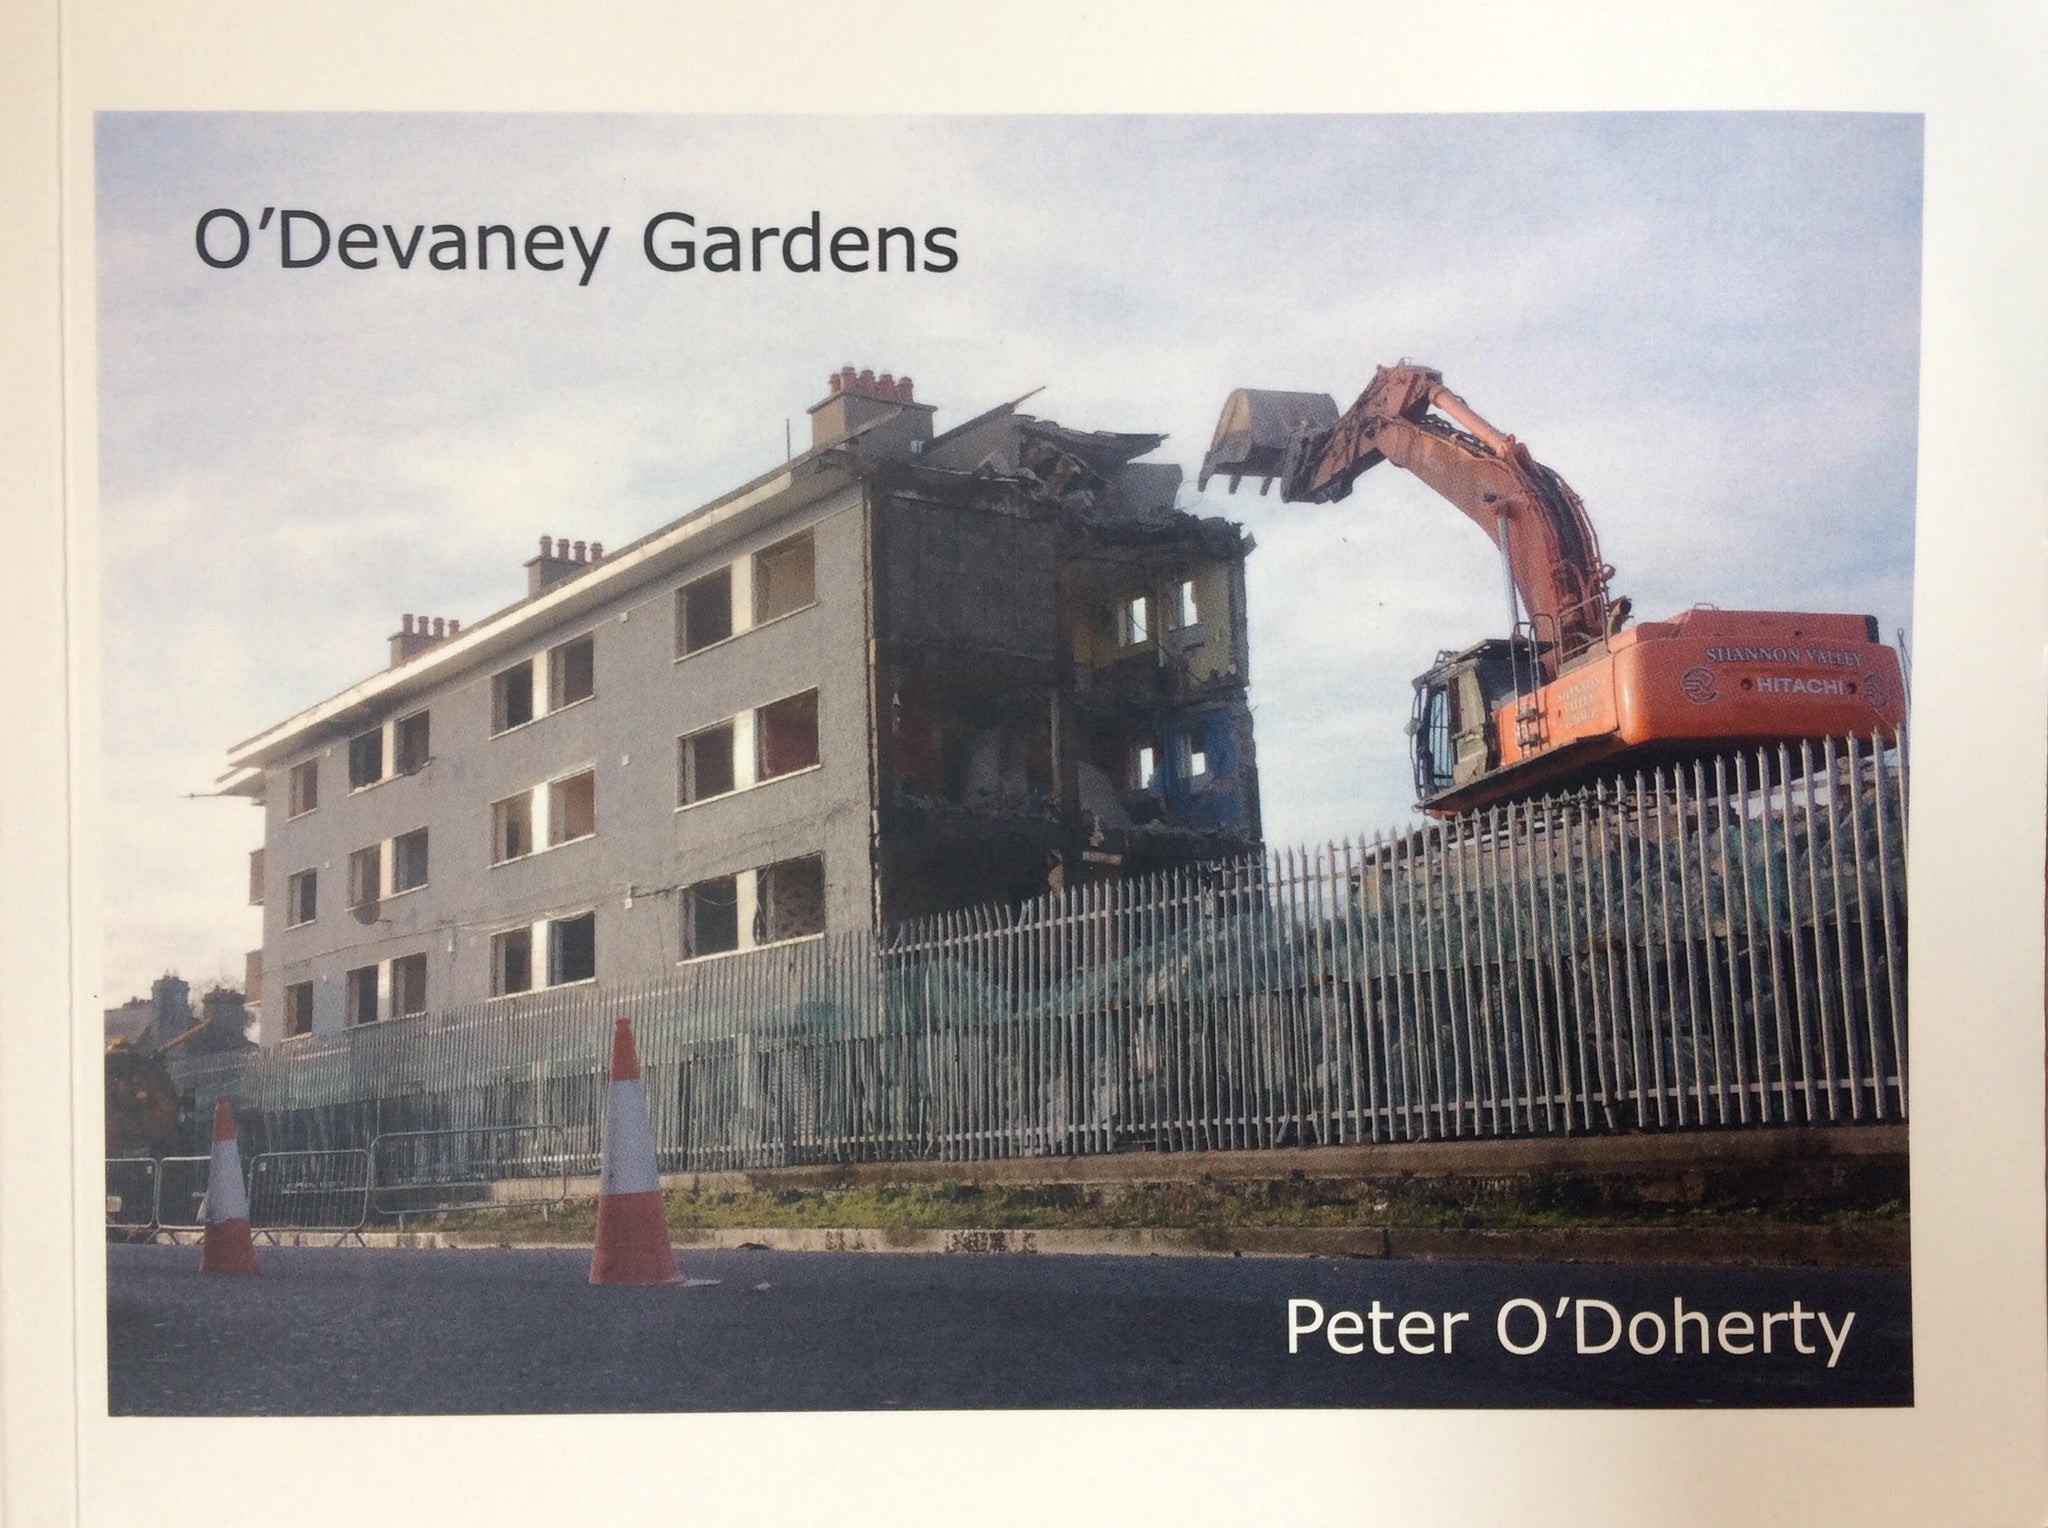 O'Devaney Gardens, Peter O' Doherty - The Library Project